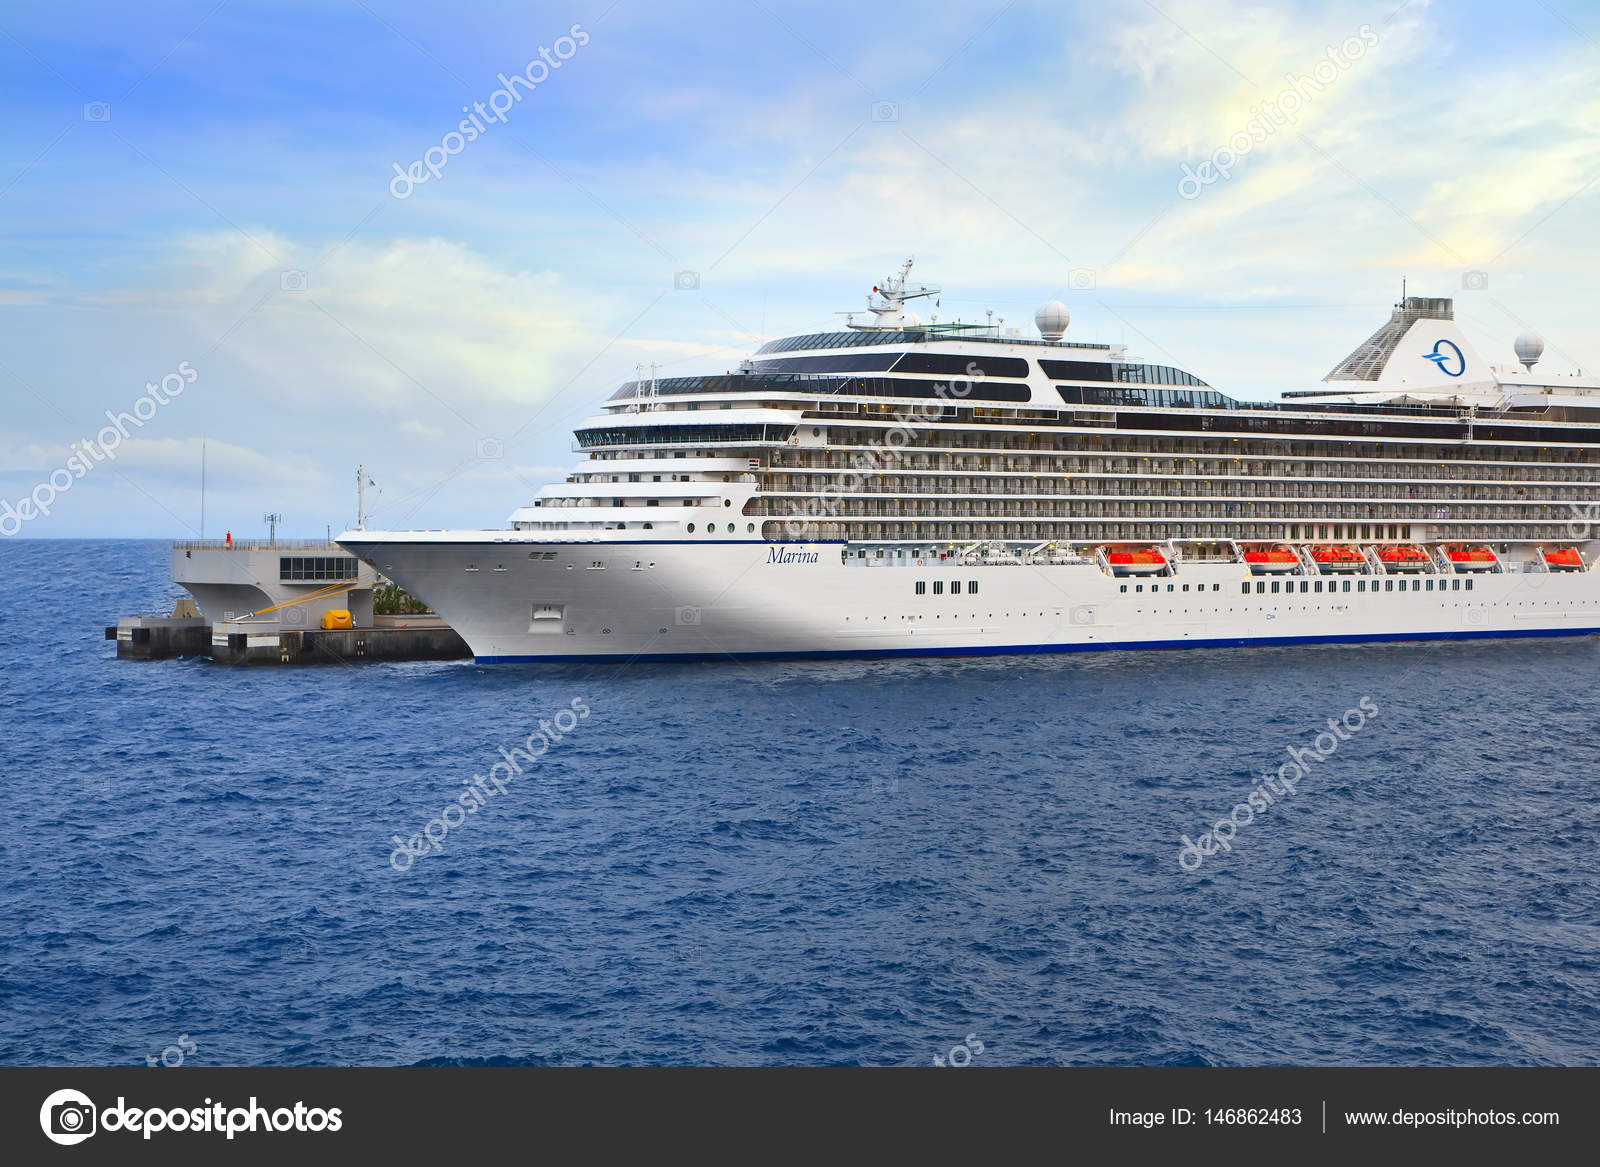 Cruise Ship In Port Of Monte Carlo Stock Editorial Photo - Cruise ships in monaco today